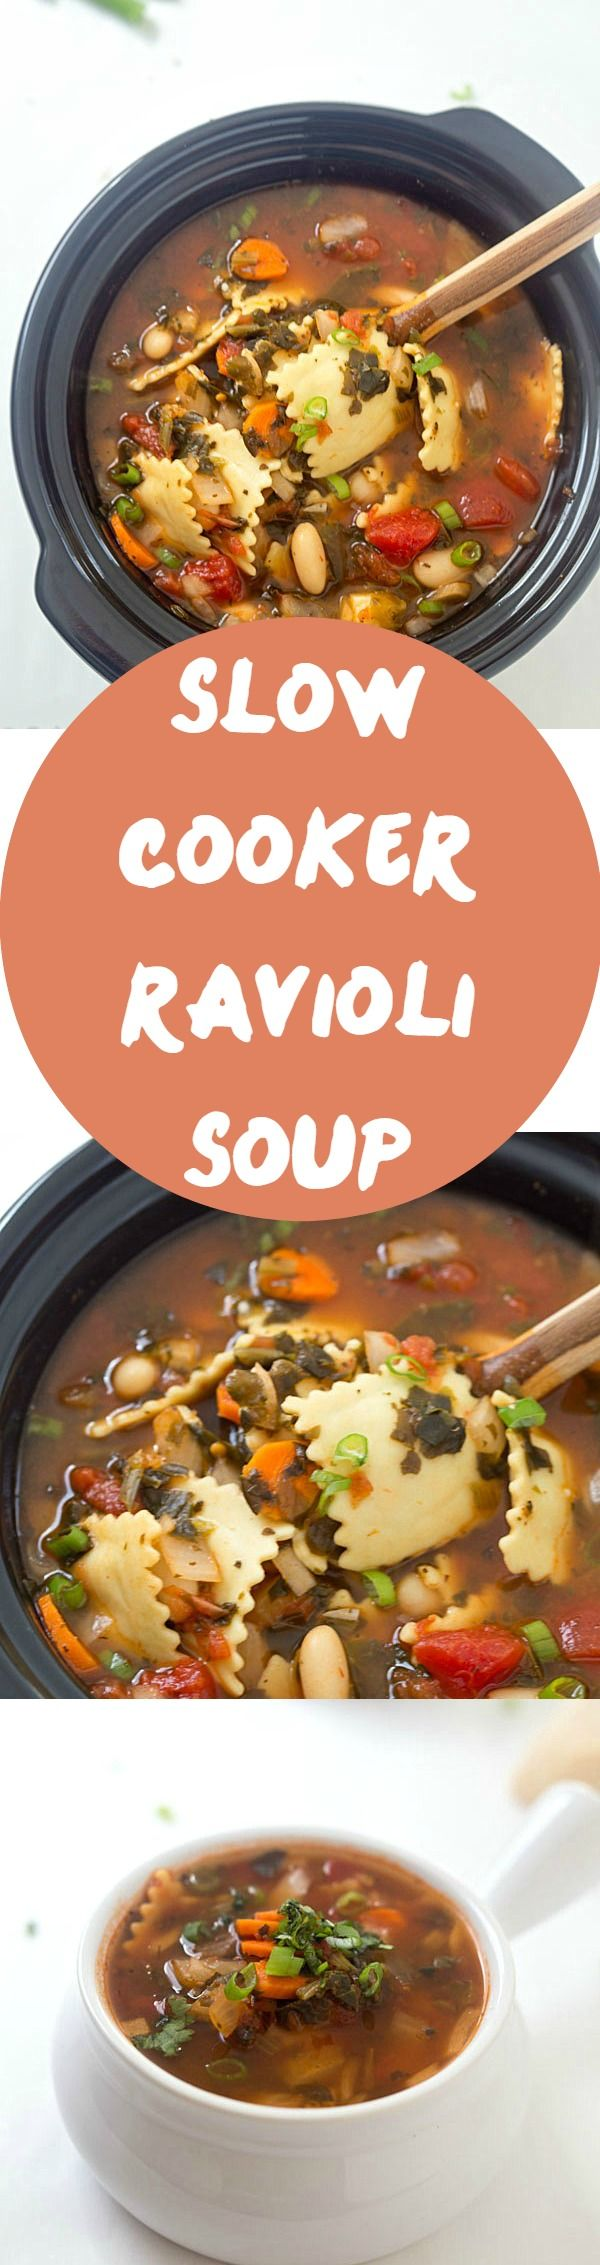 Slow Cooker Ravioli Soup - Loaded with vegetables, cheese-stuffed ravioli! So good, grab a piece of bread and let's dig in! {ad}